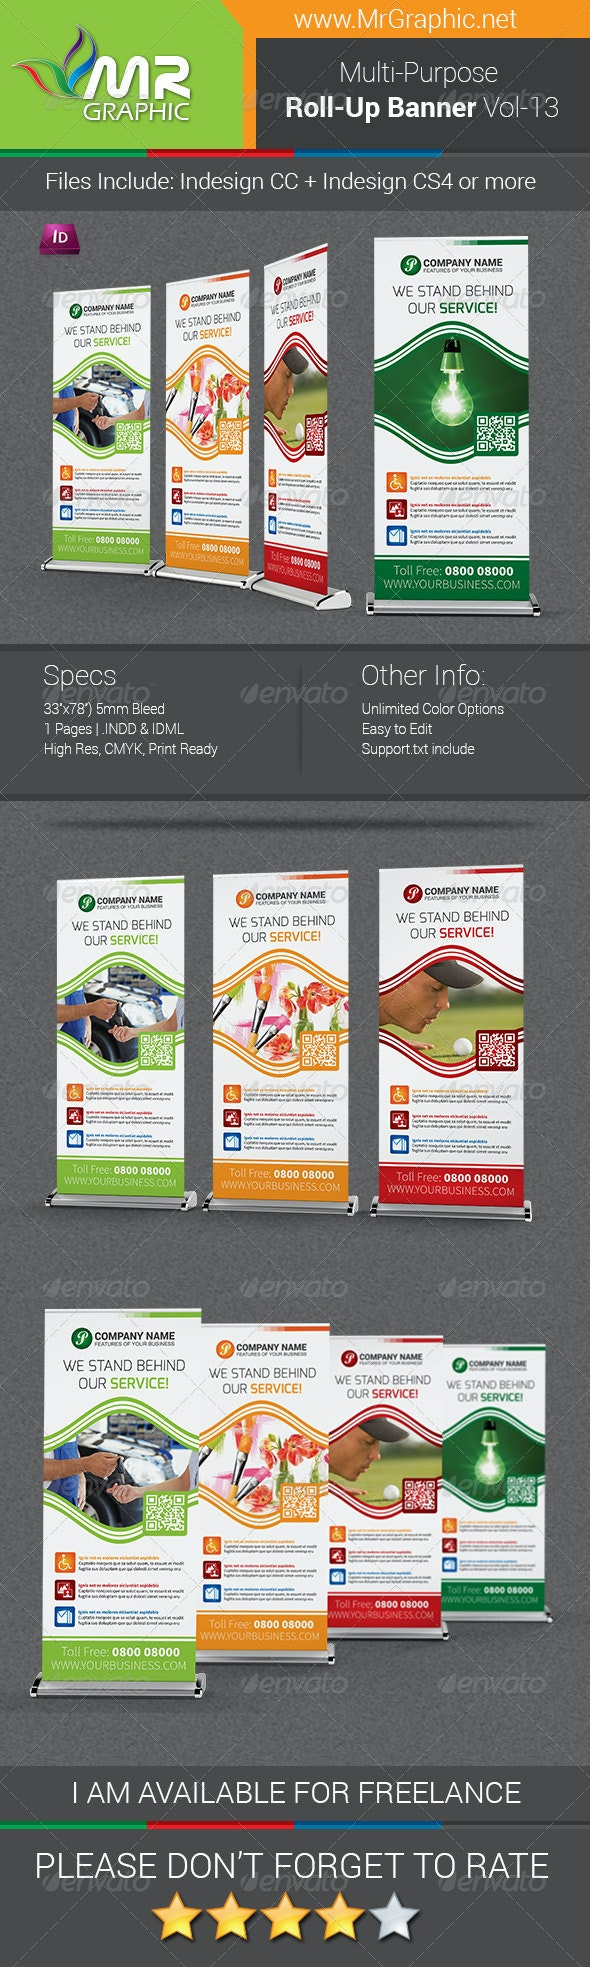 Multi-Purpose Business Roll-Up Banner Vol-13 - Signage Print Templates